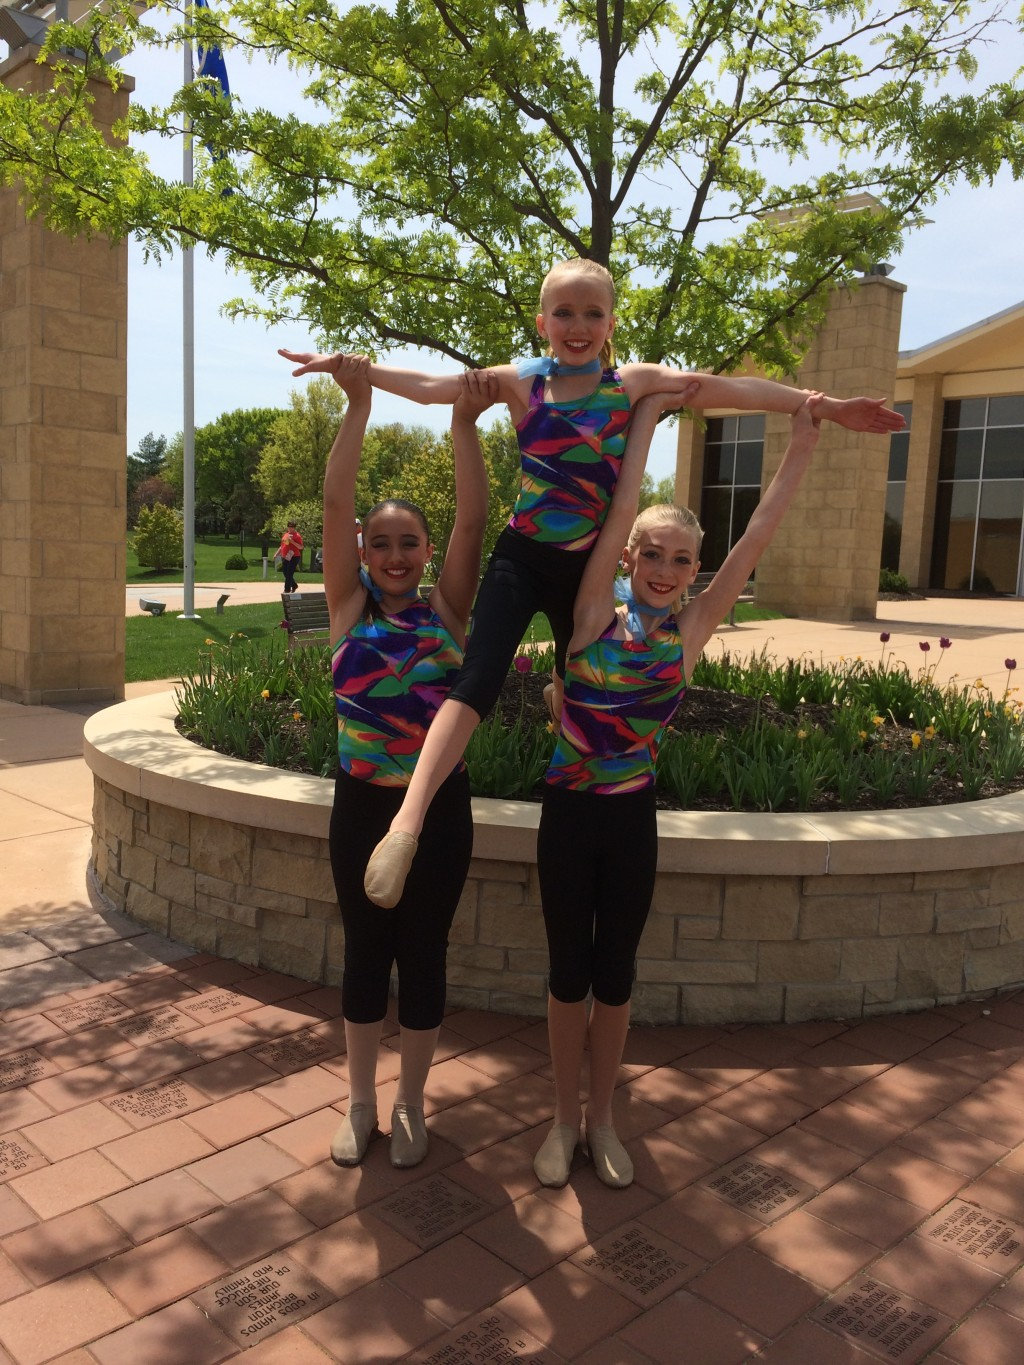 Remarkable, teen dance studios in morton il consider, that